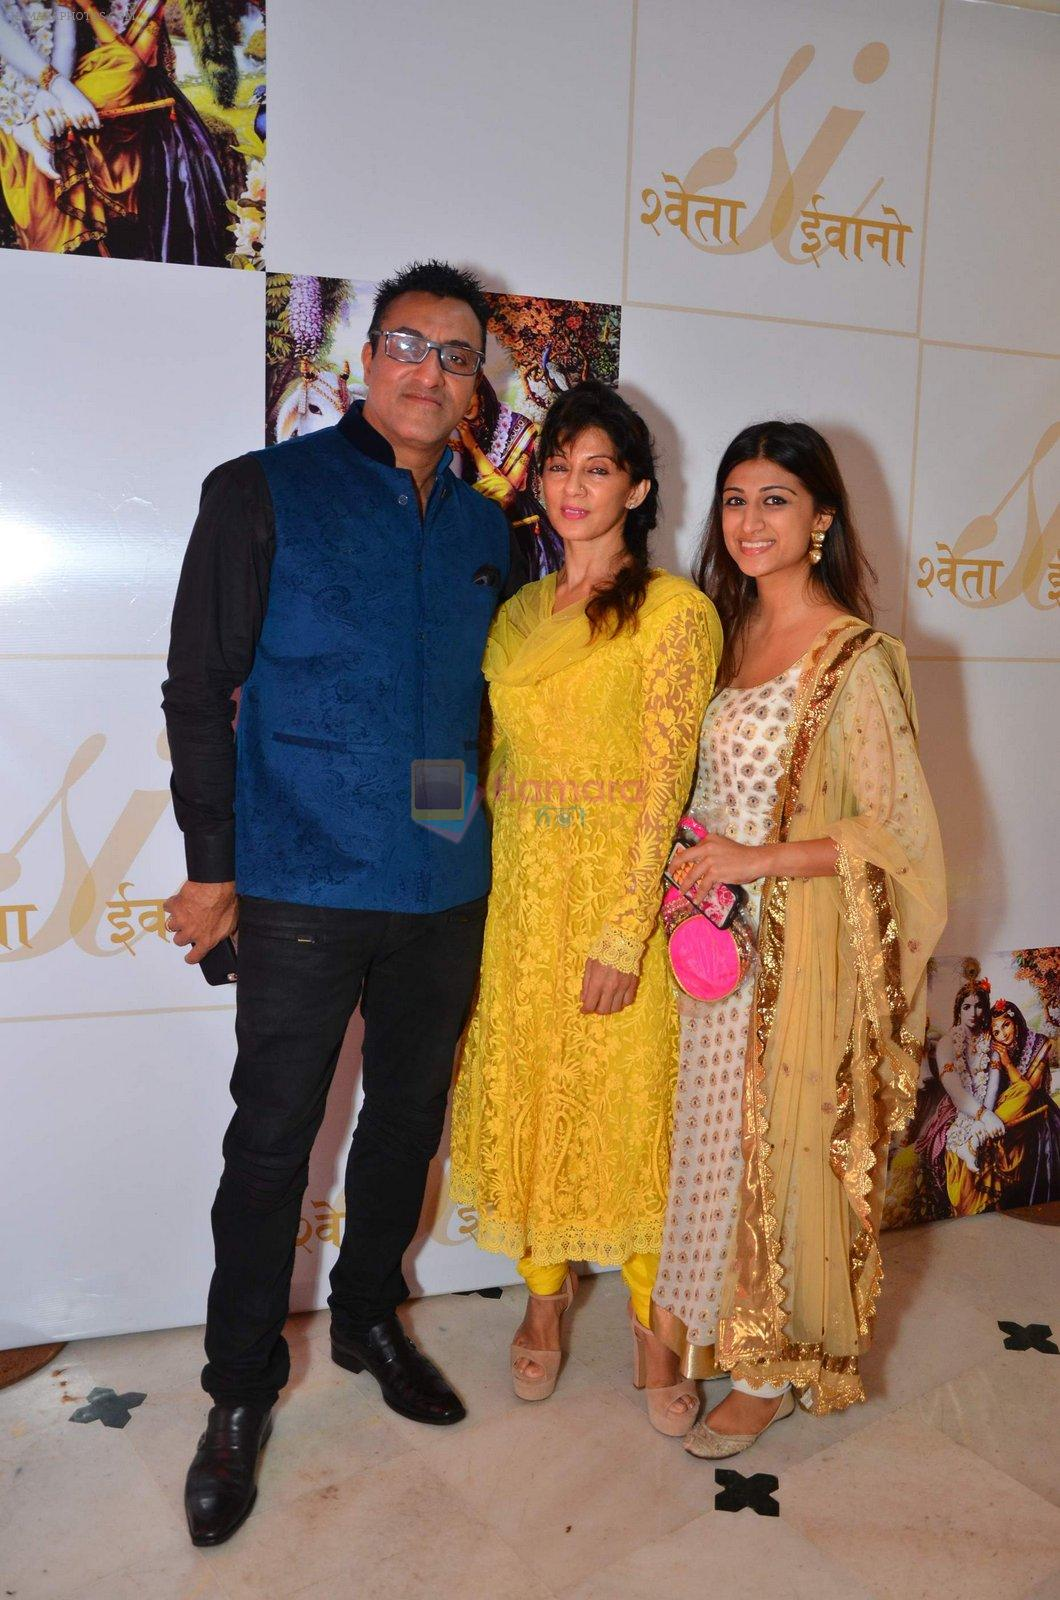 mohammad morani with zara morani and daughter Shaza at singer Shweta Pandit's wedding with Italian boy friend Ivano Fucci on 2nd Sept 2016